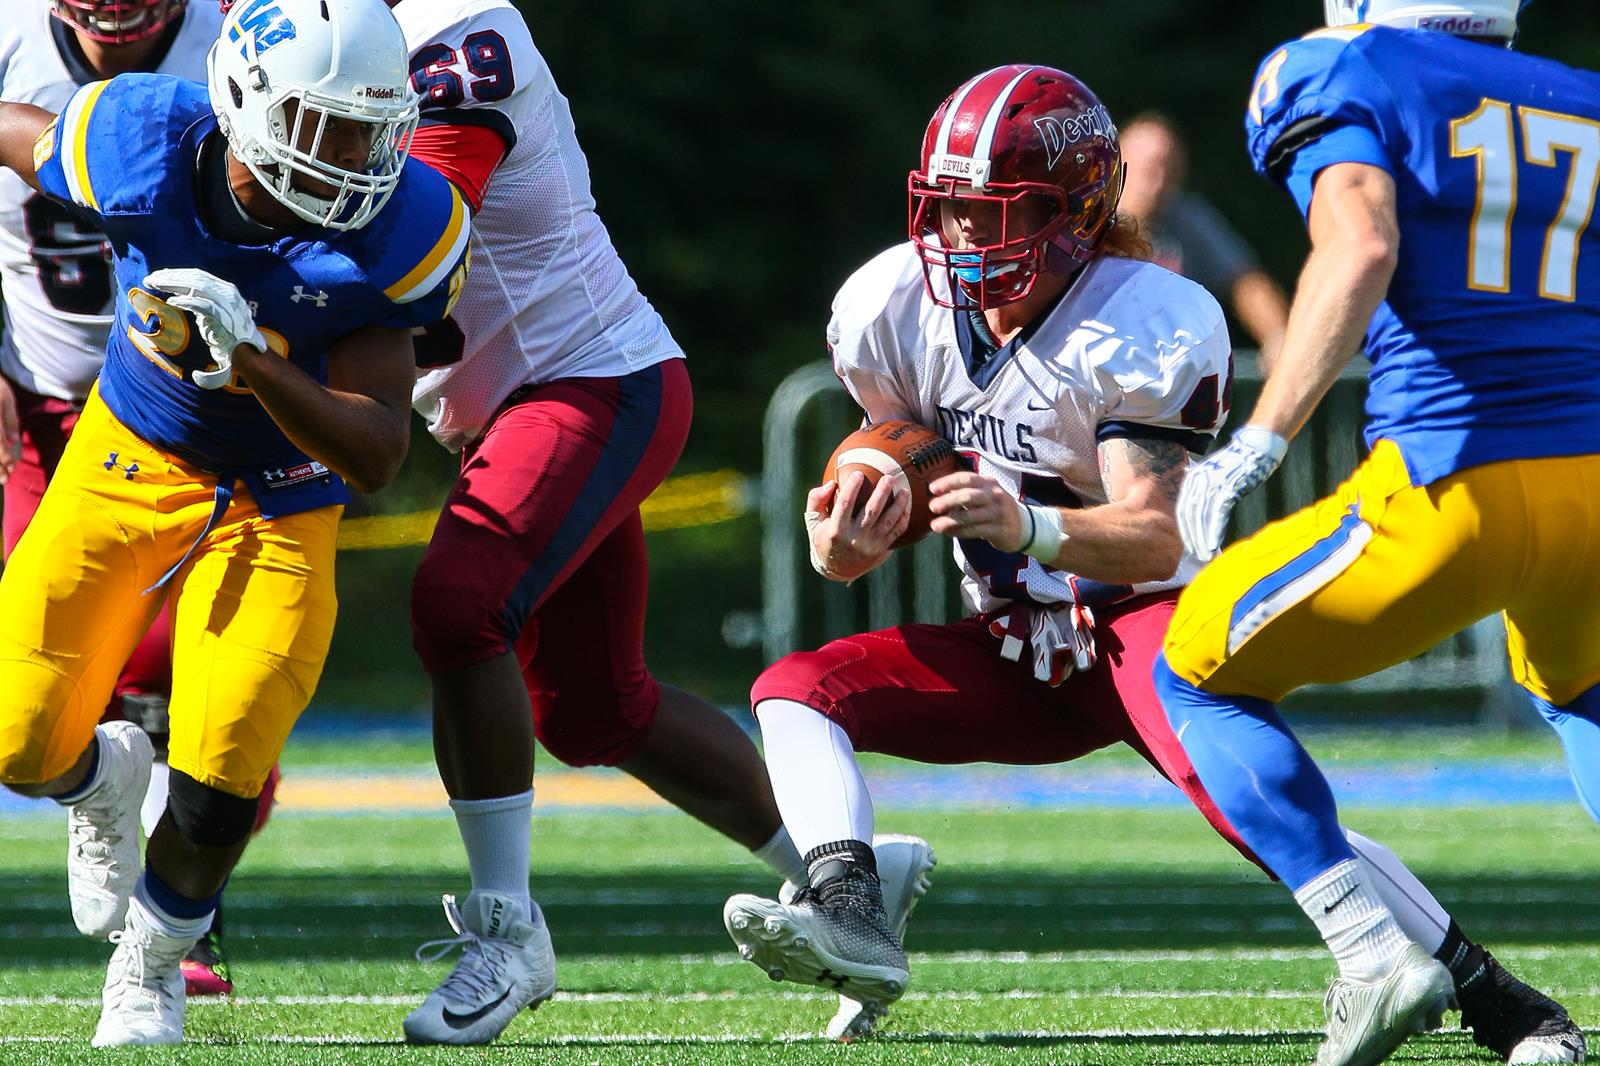 d3 football news scores and stats hero sports